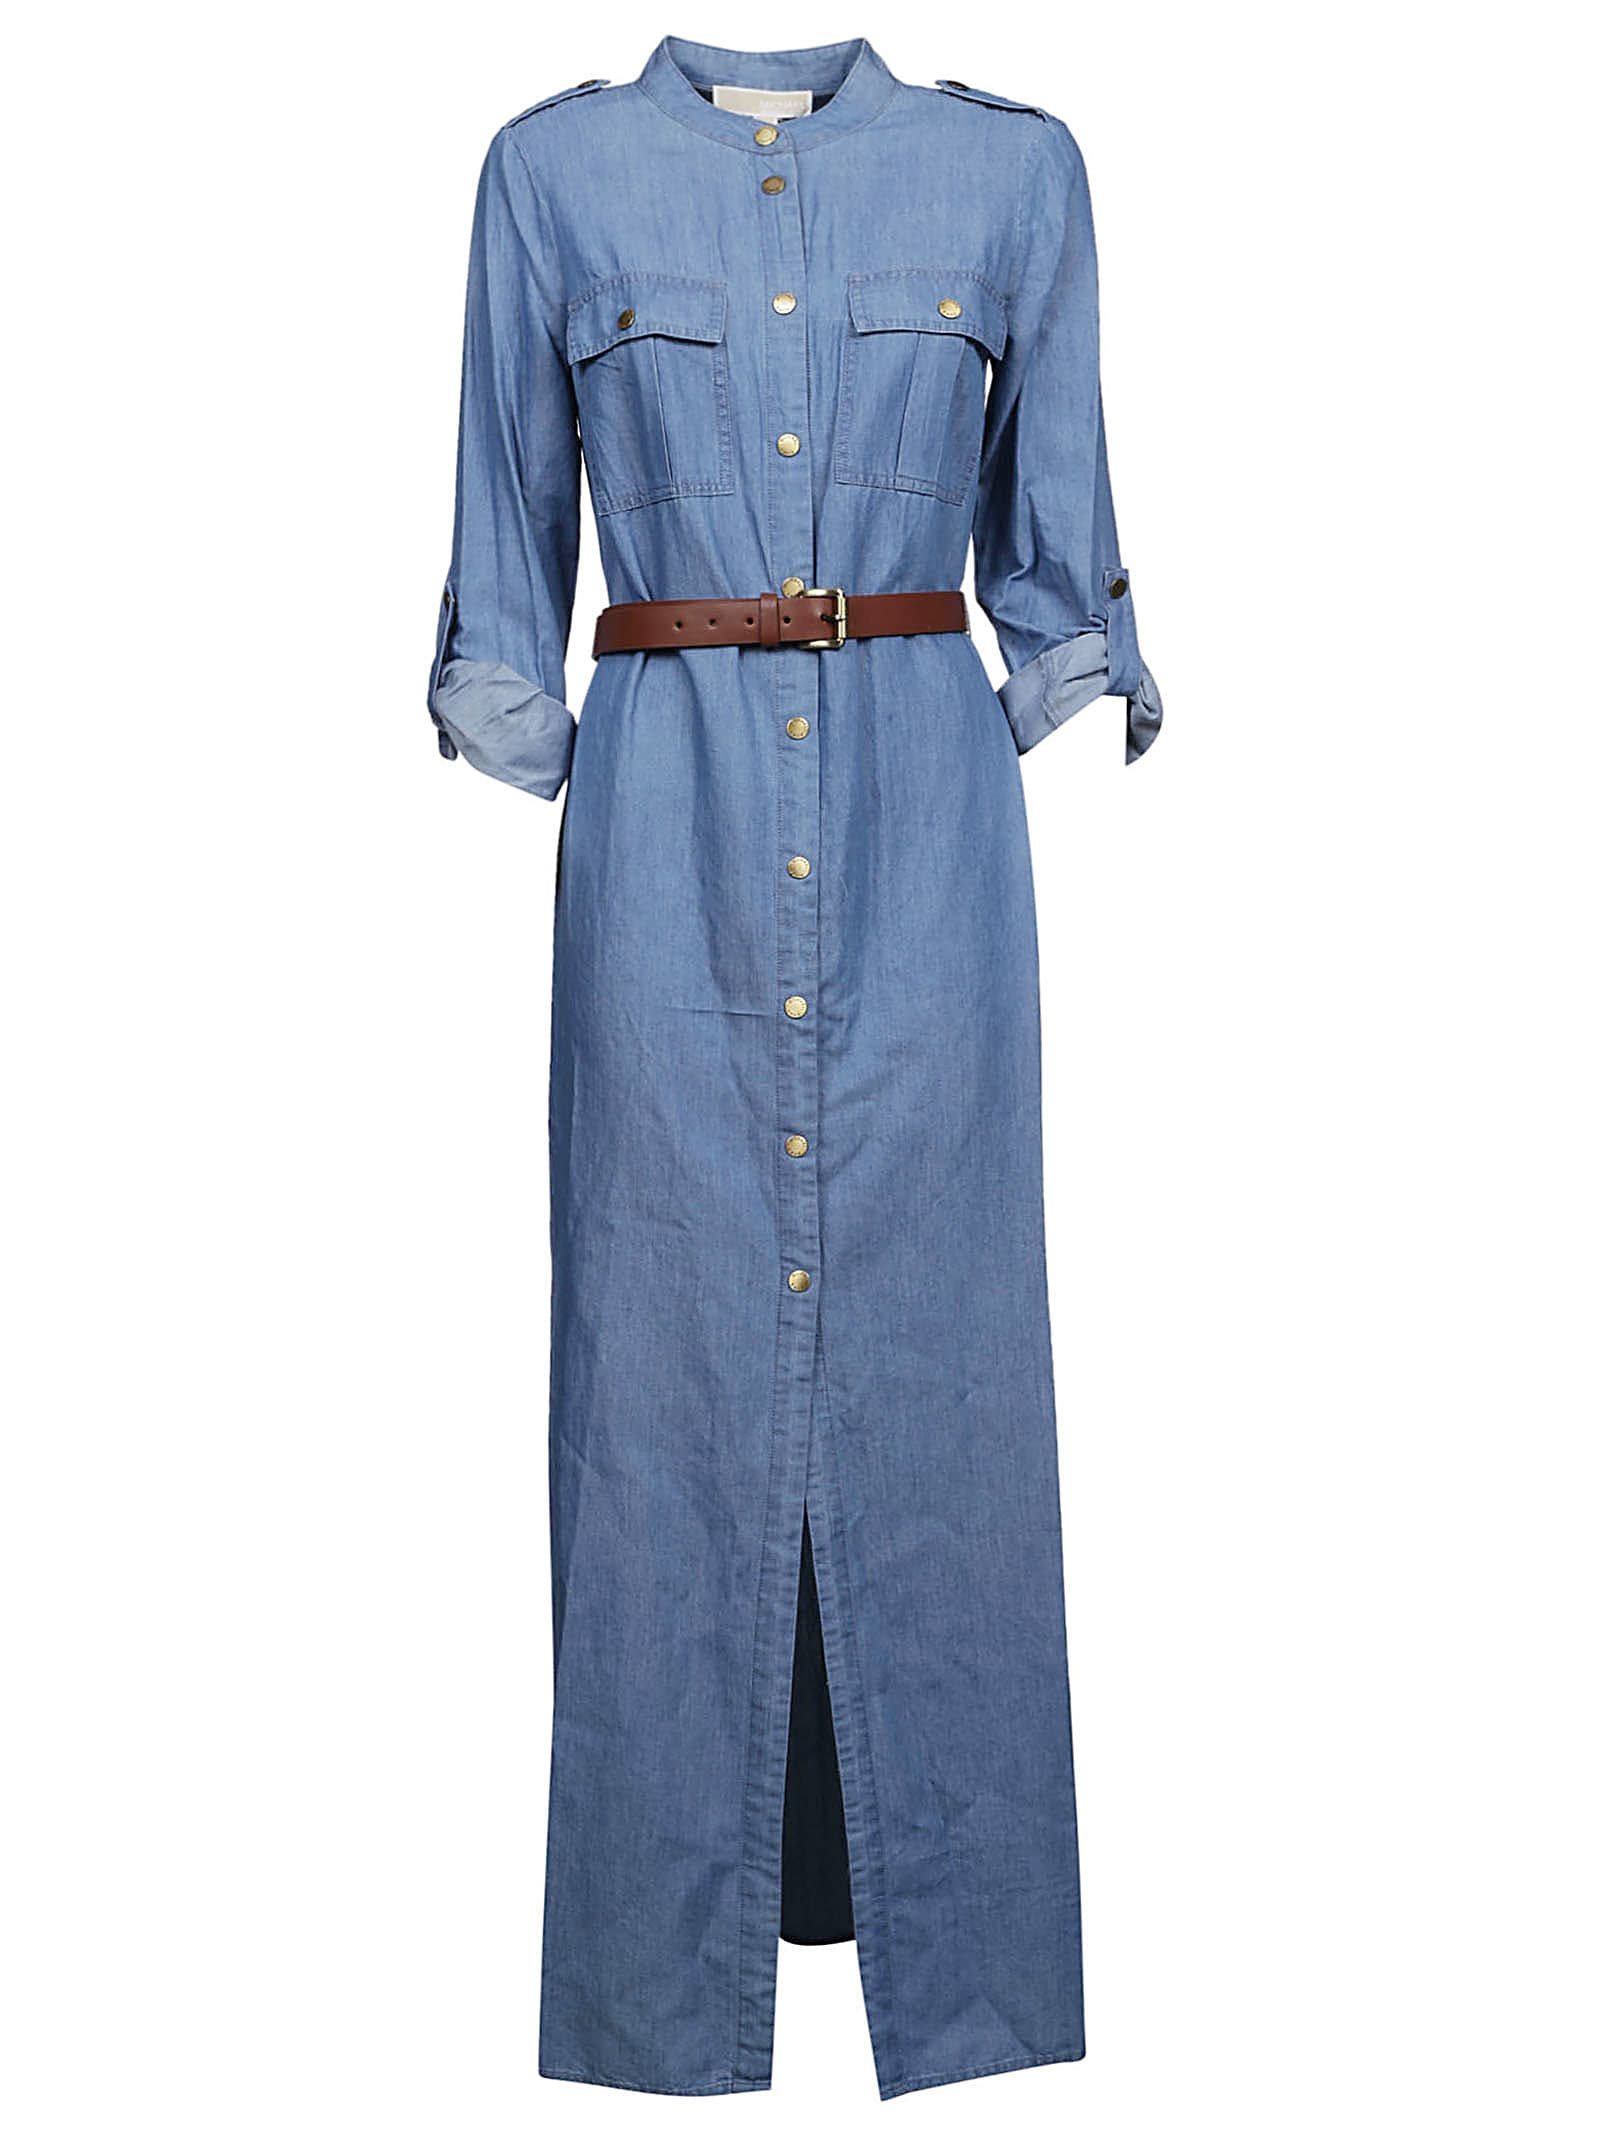 Michael Kors Denim Maxi Dress